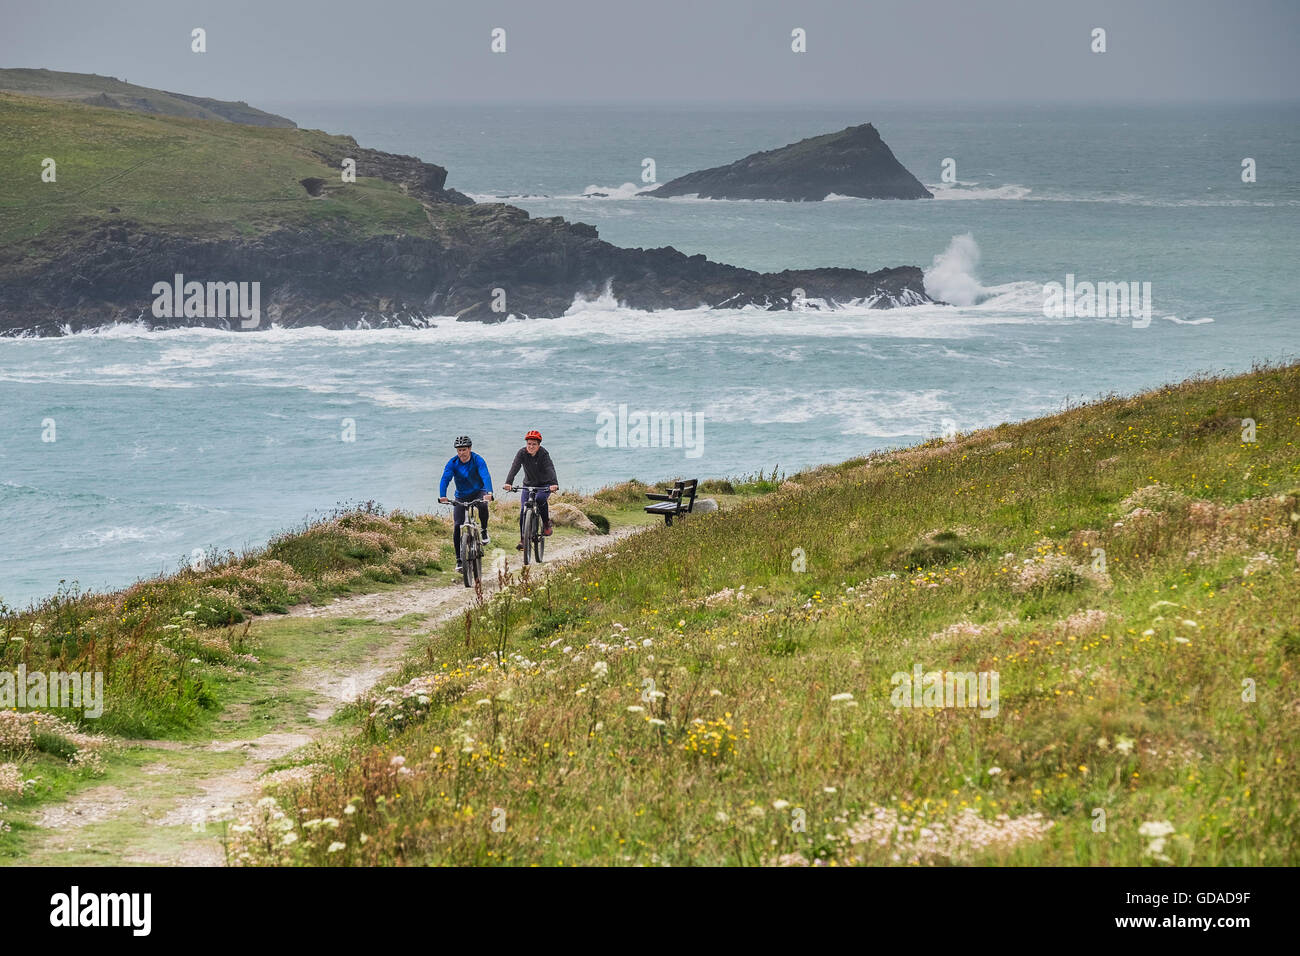 Two mountain bikers cycling along a footpath on East Pentire Headland in Newquay, Cornwall. - Stock Image